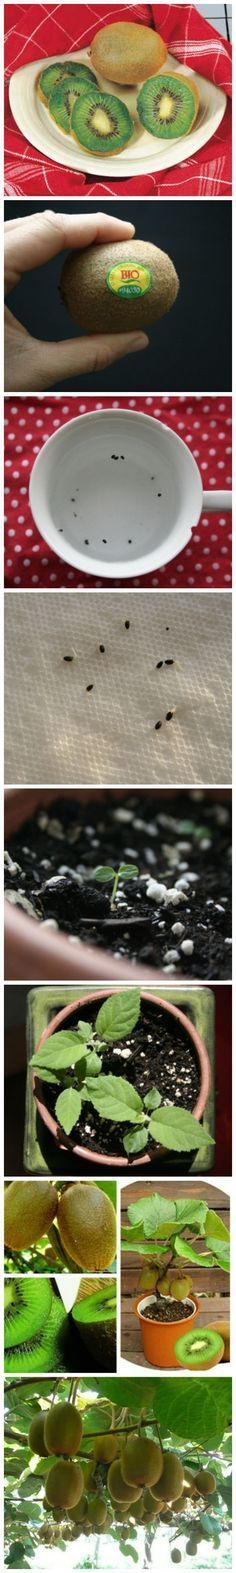 How To Grow A Kiwi #Plant From Seed – DIY: